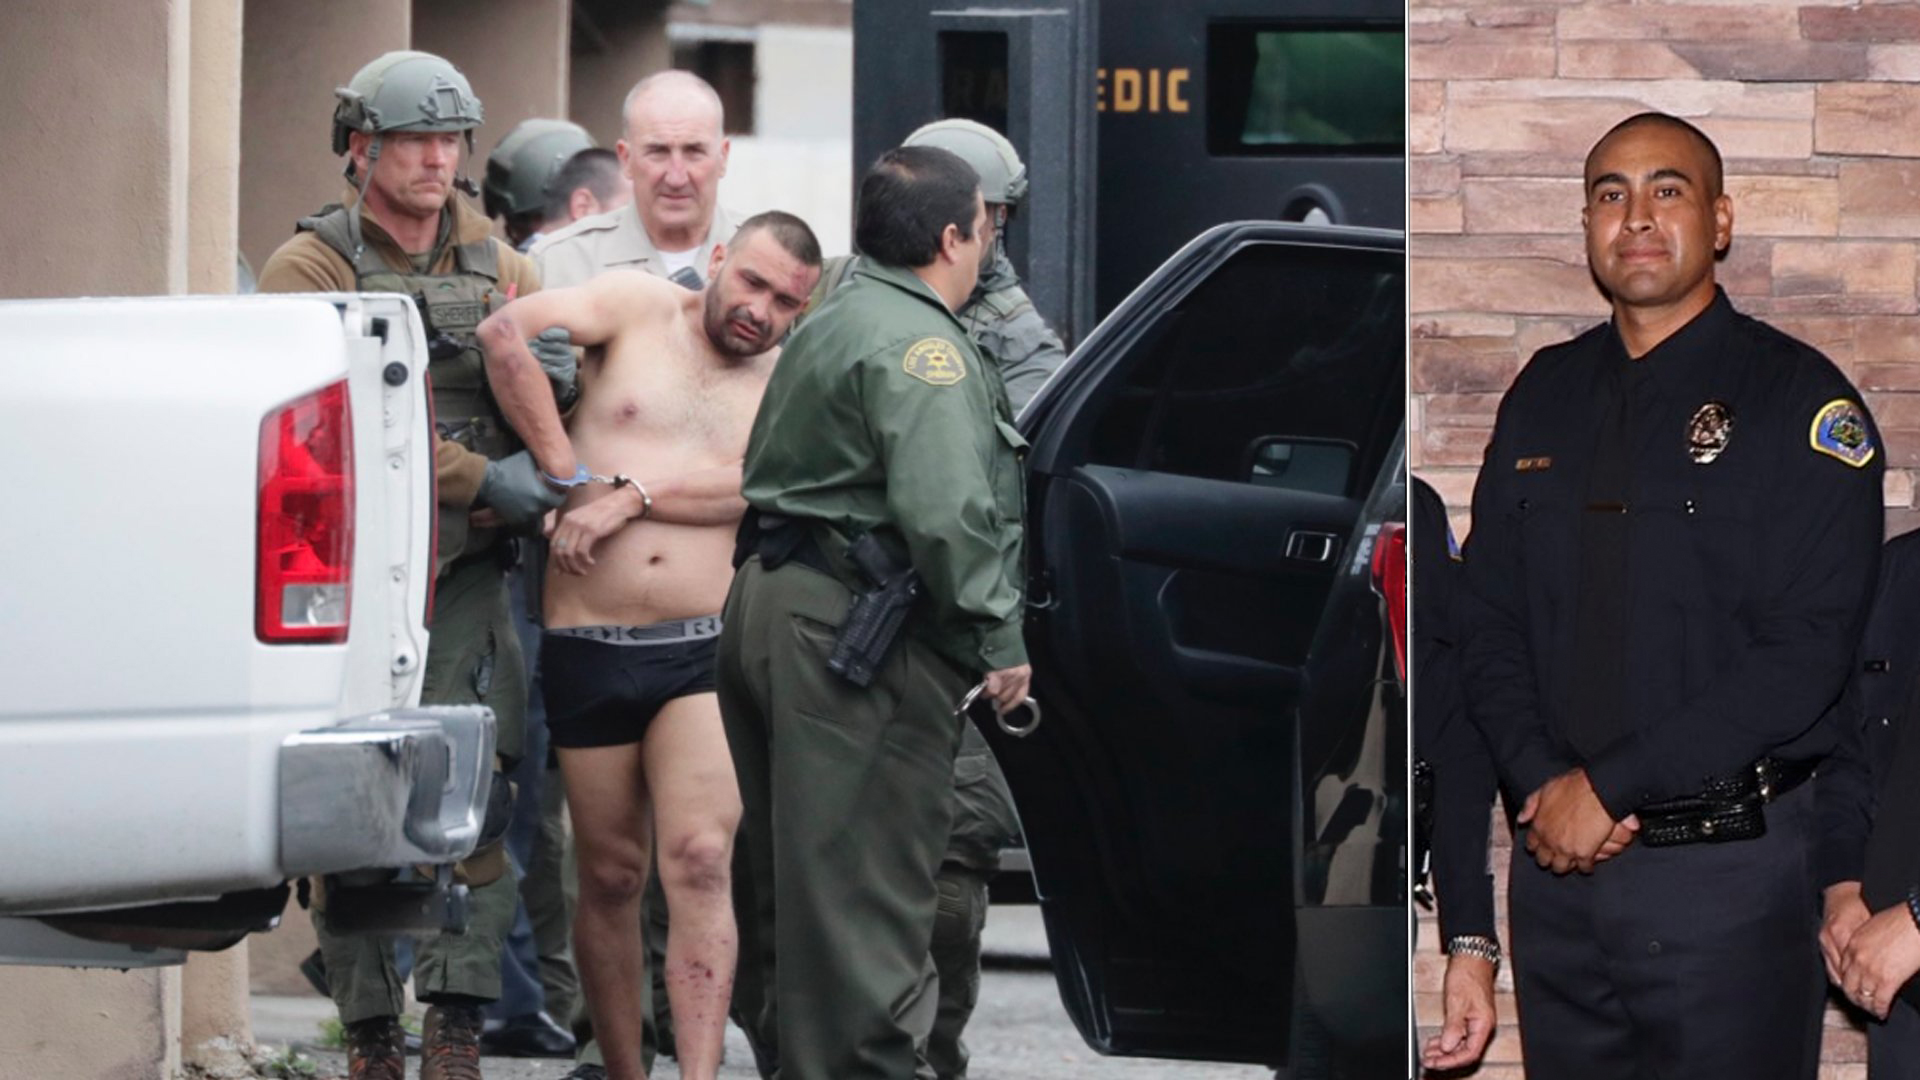 Isaias De Jesus Valencia, suspected of killing a Pomona police officer, is taken into custody following a lengthy standoff with police on March 10, 2018; and Officer Gregg Casillas is seen in an undated photo. (Credit: Irfan Kahn/Los Angeles Times, left; Pomona Police Department, right)